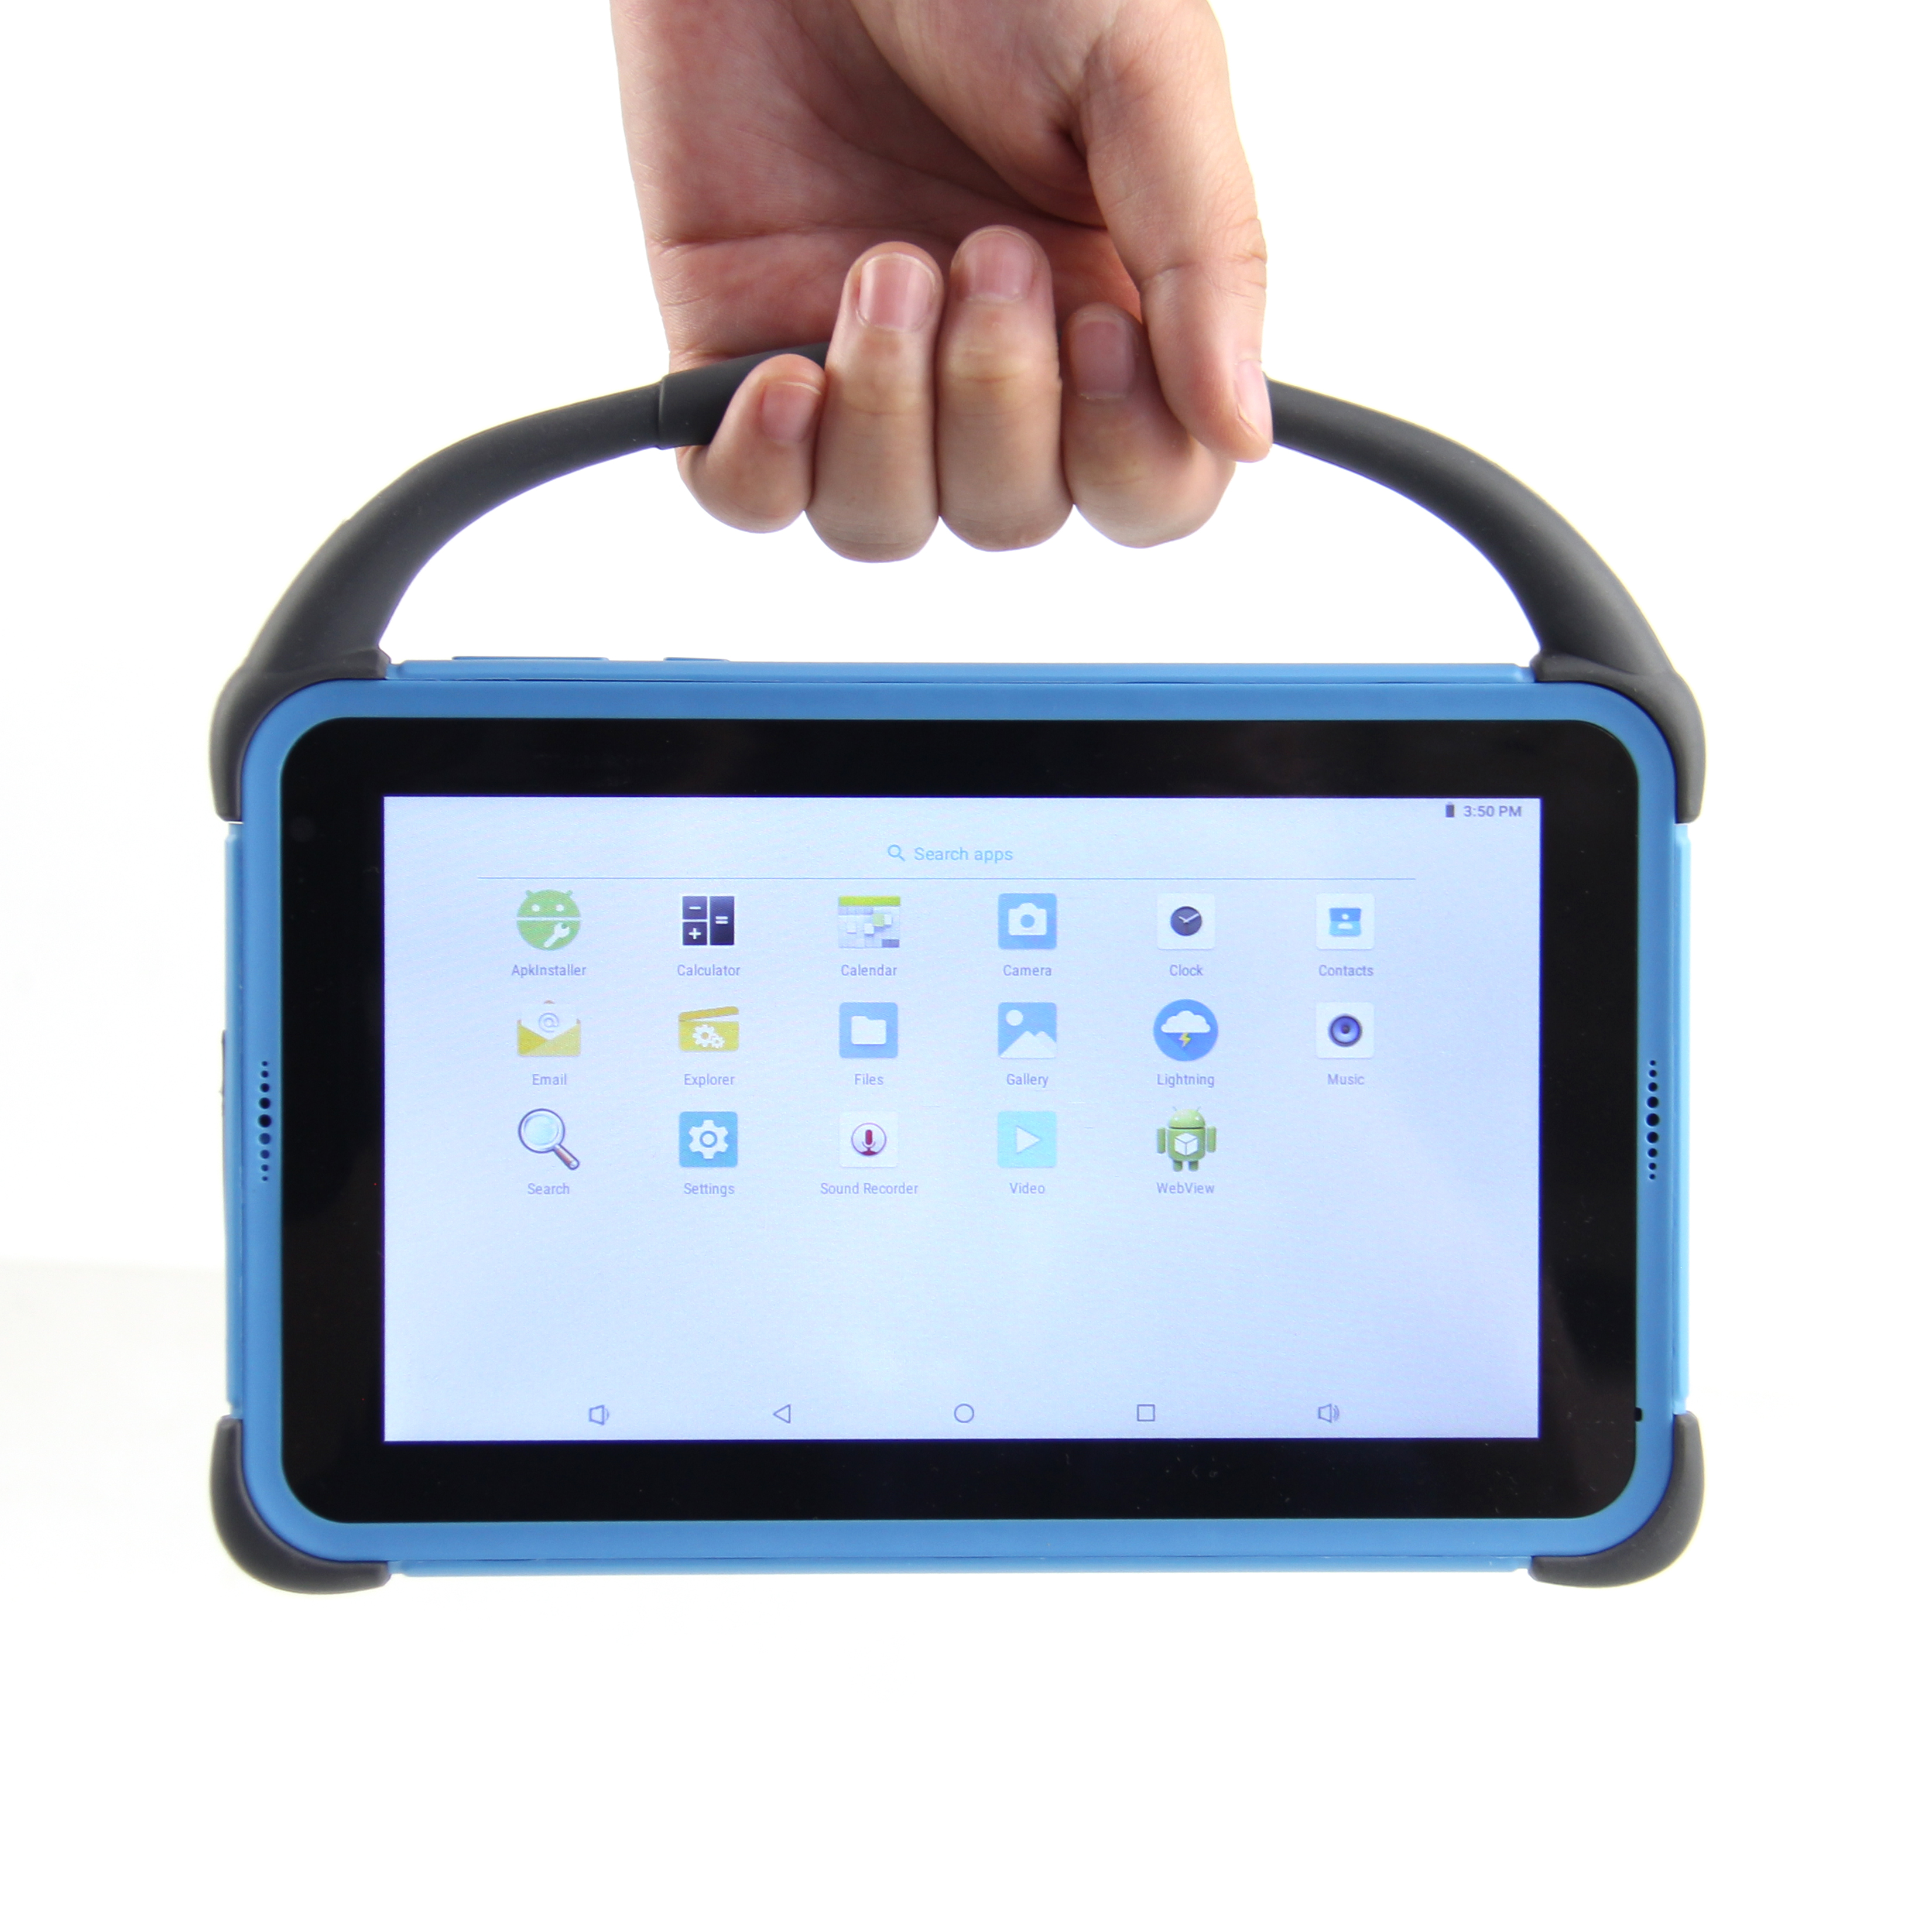 12 years olds Kids education 7inch pad 3G Calling Android  kids tablet phablet for children with Handle and Protective case